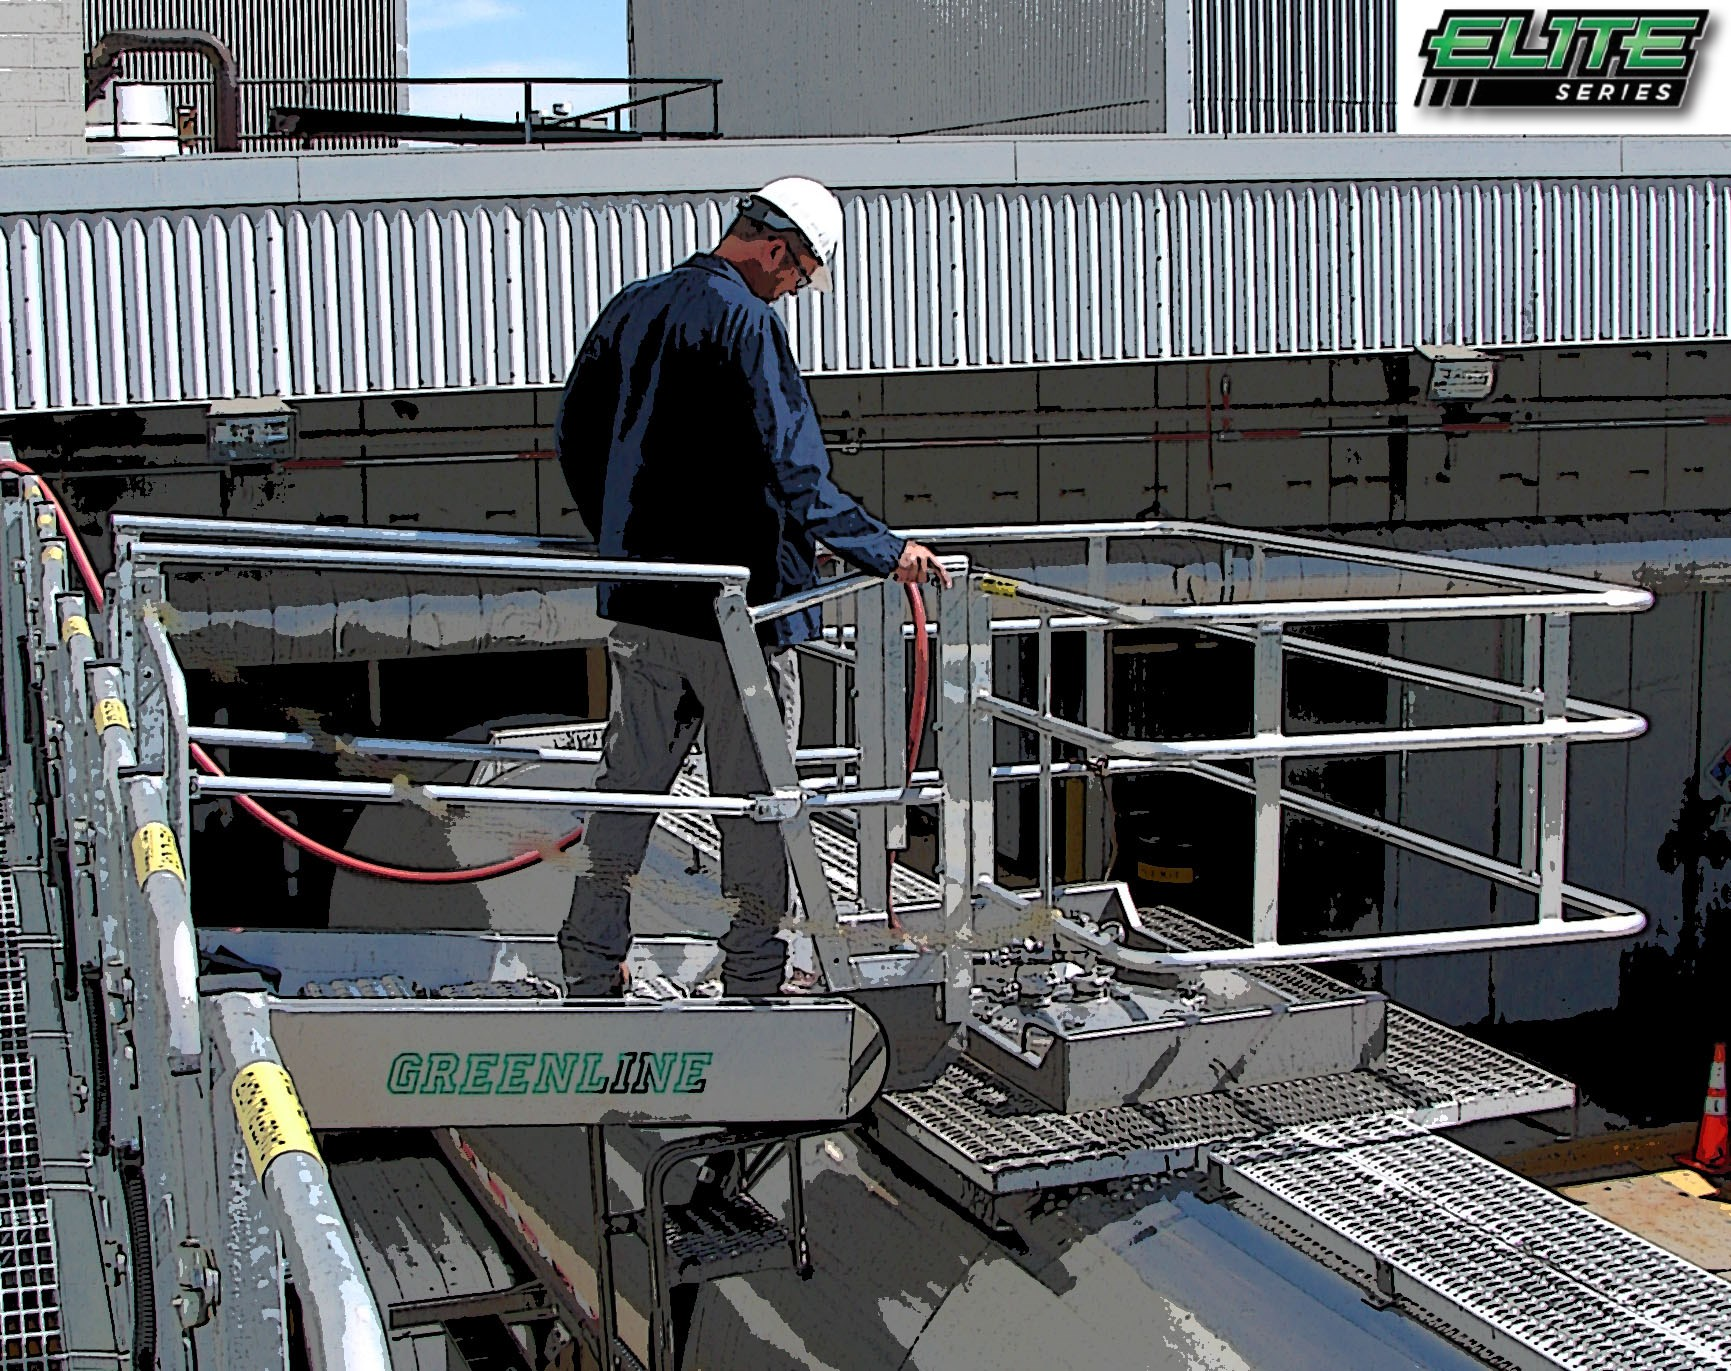 Self Leveling Stairs : Elite series greenline gangway self leveling stairs